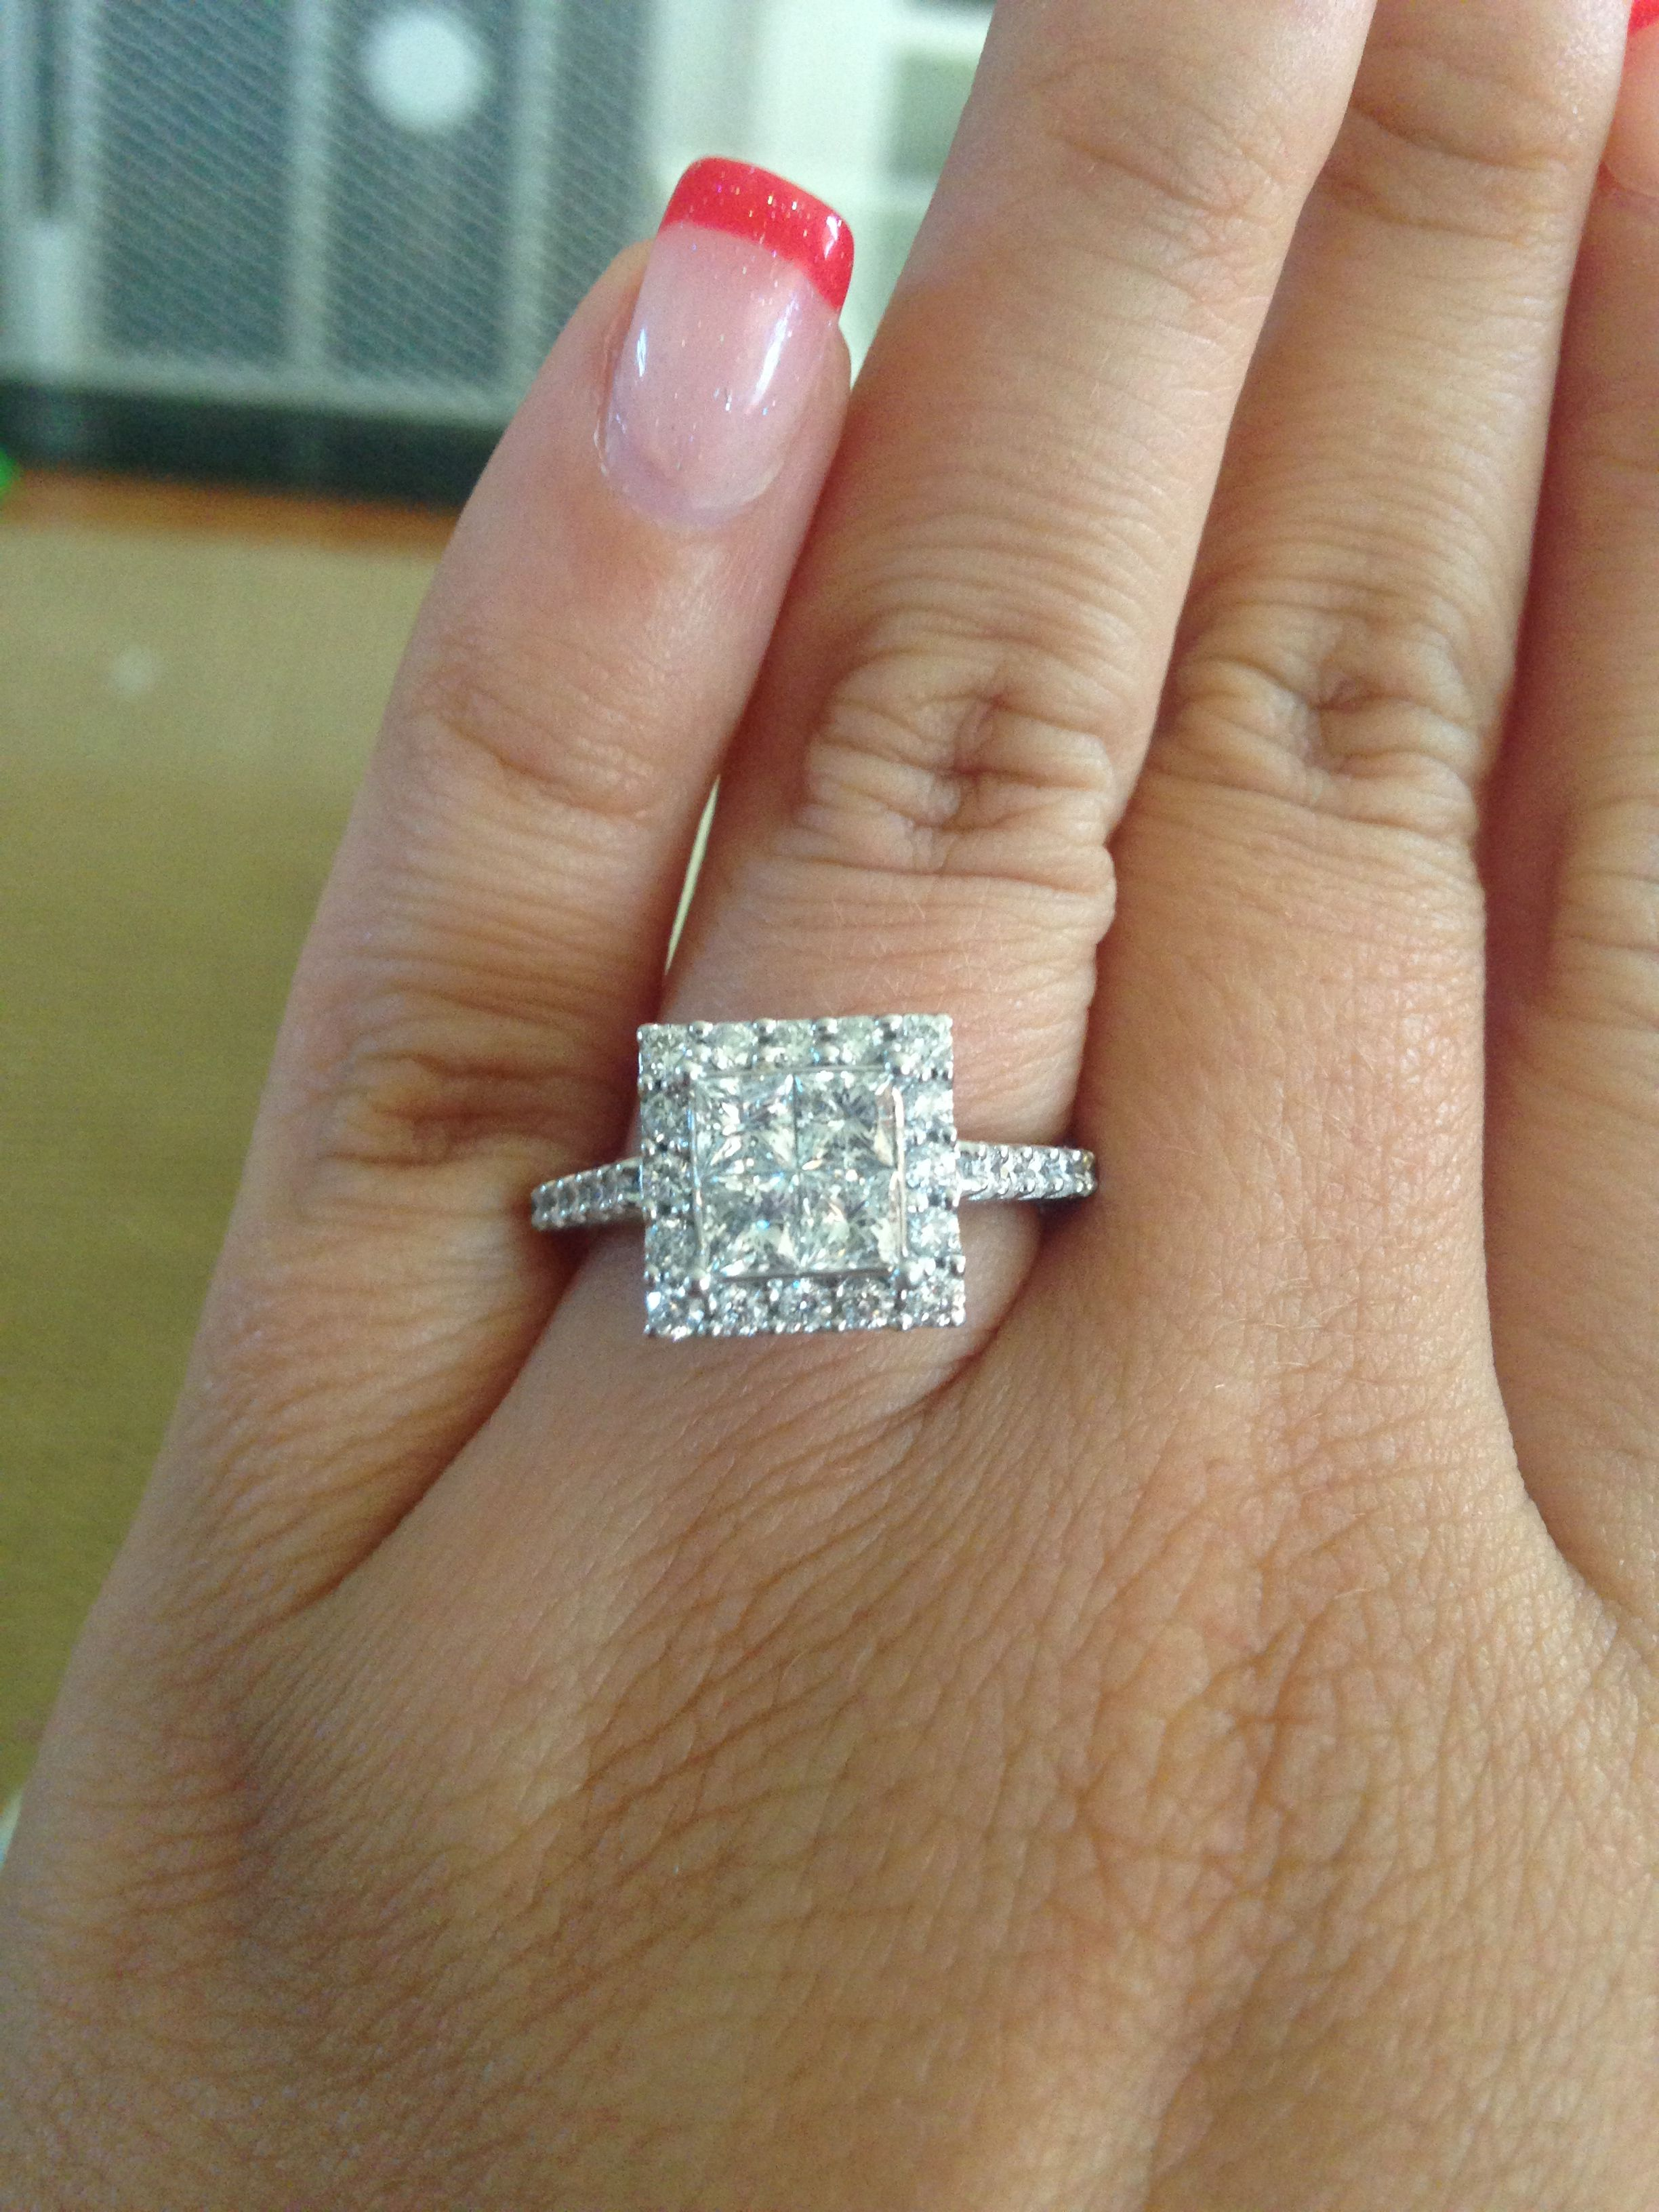 Looks just like mine!! Love it! So excited to become Mrs. Morris :)